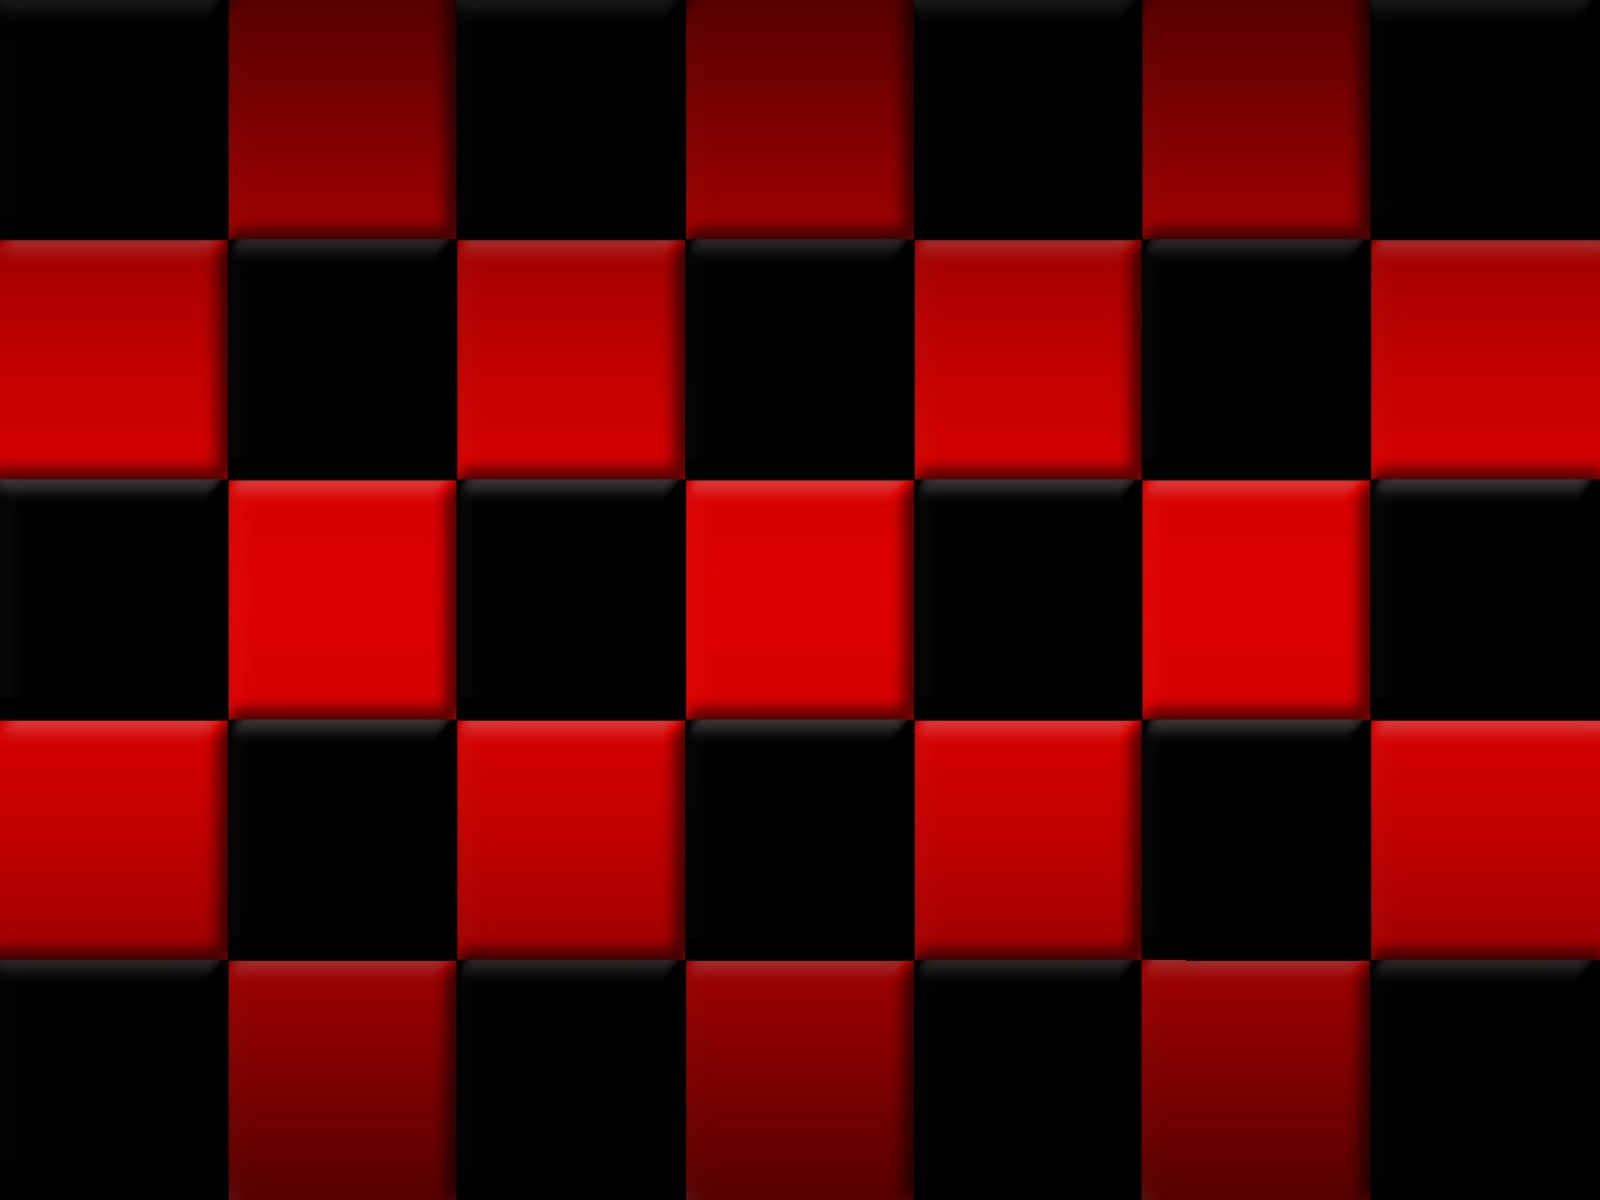 Red & Black Squares Wallpaper